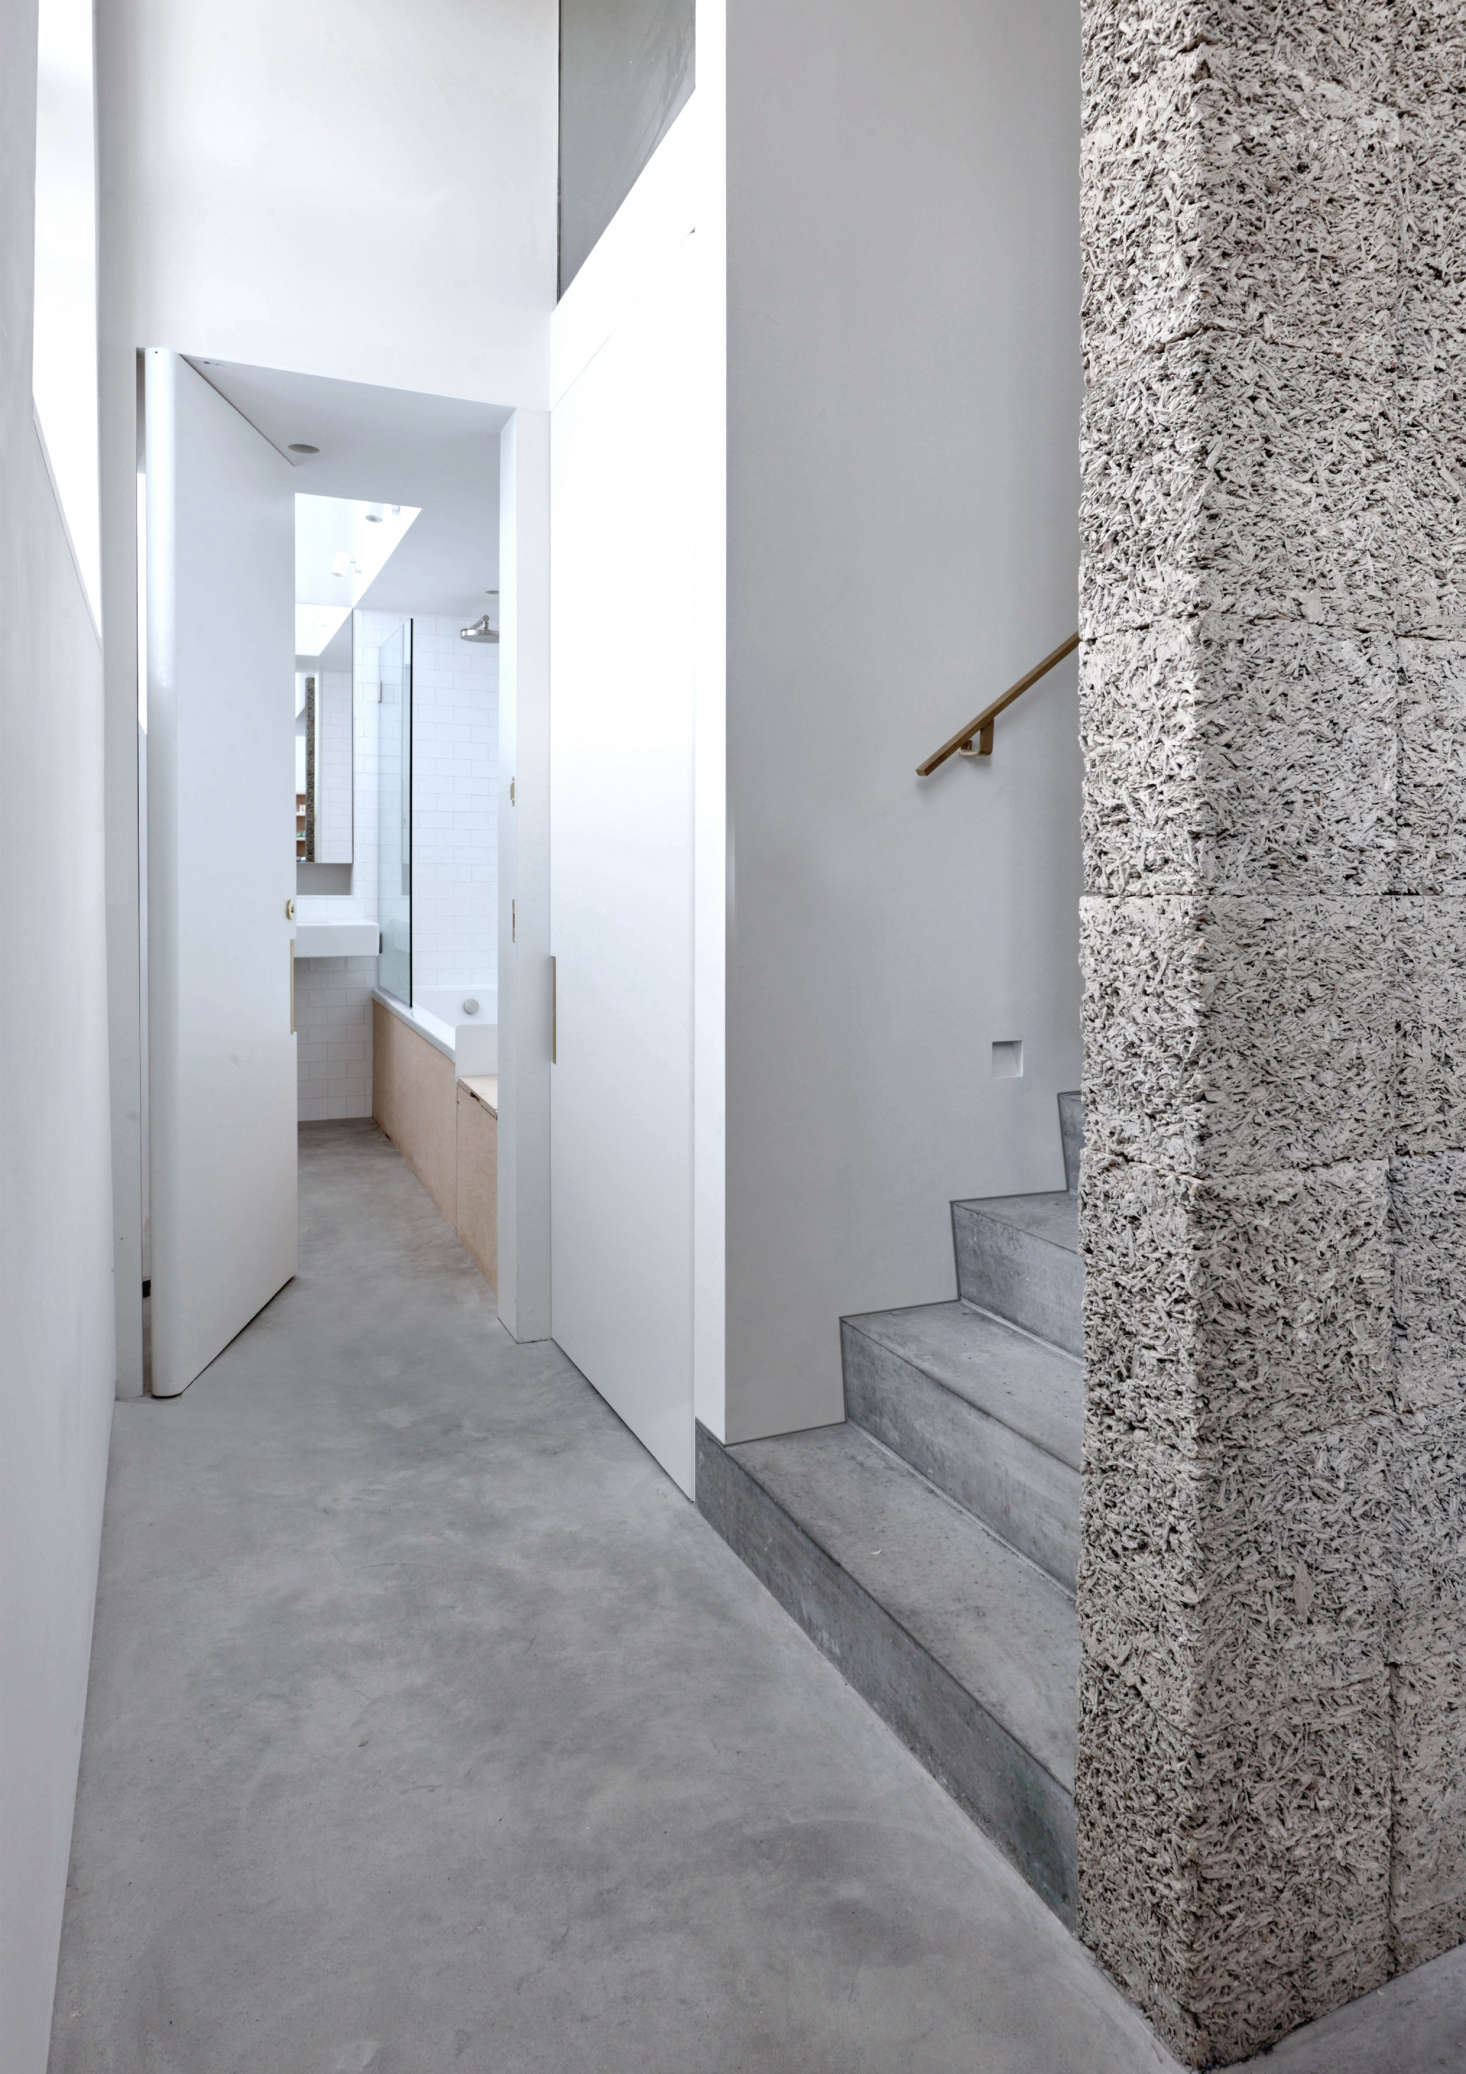 Another version of recycled wood-cementappears as the dramatic structural spine of the stairs. Also shown, a glimpse of the skylit downstairs bath, where polished concrete and plywood meet white tiles and glass.